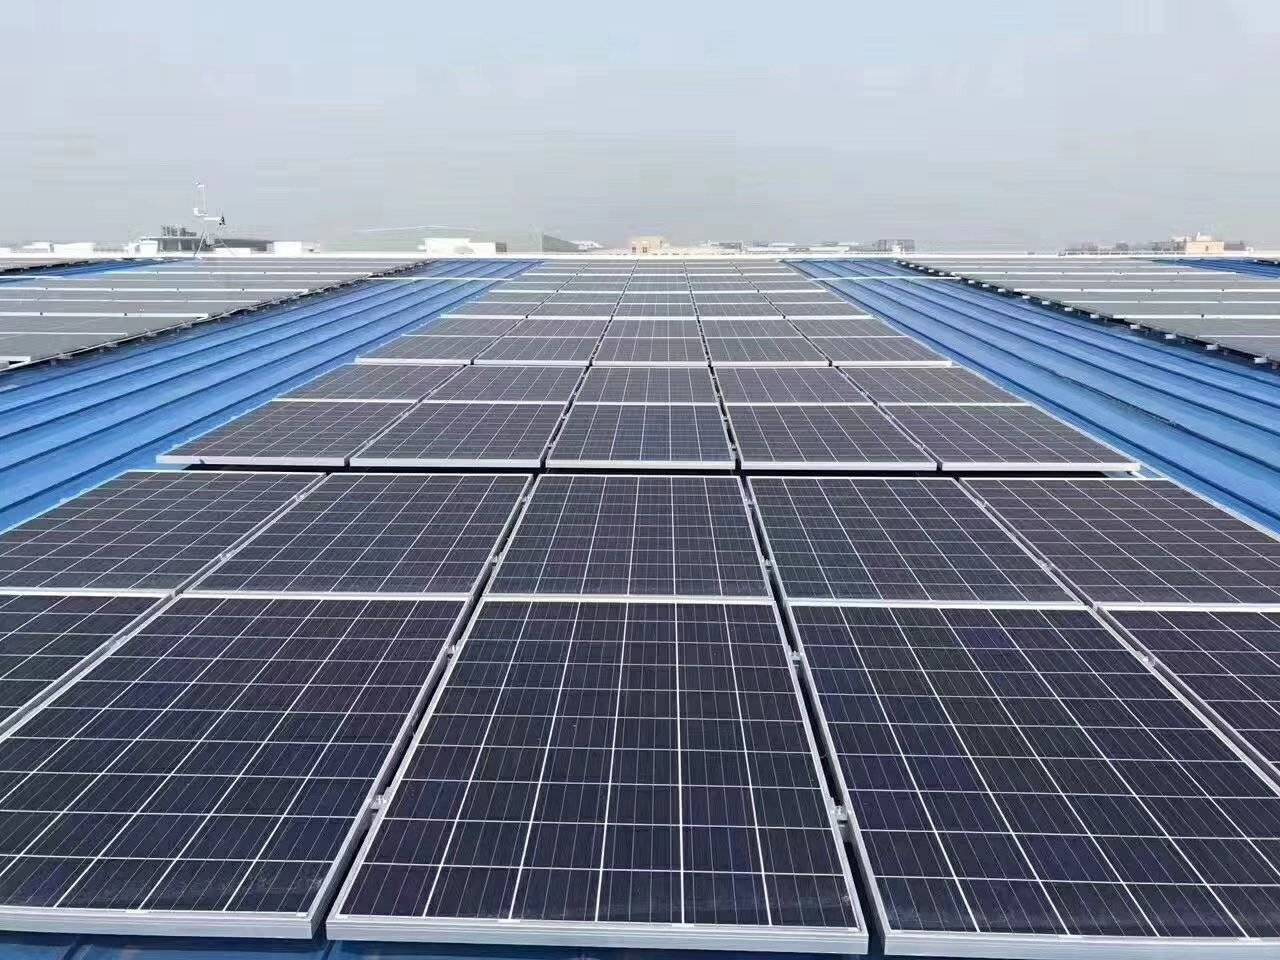 400KW solar power system